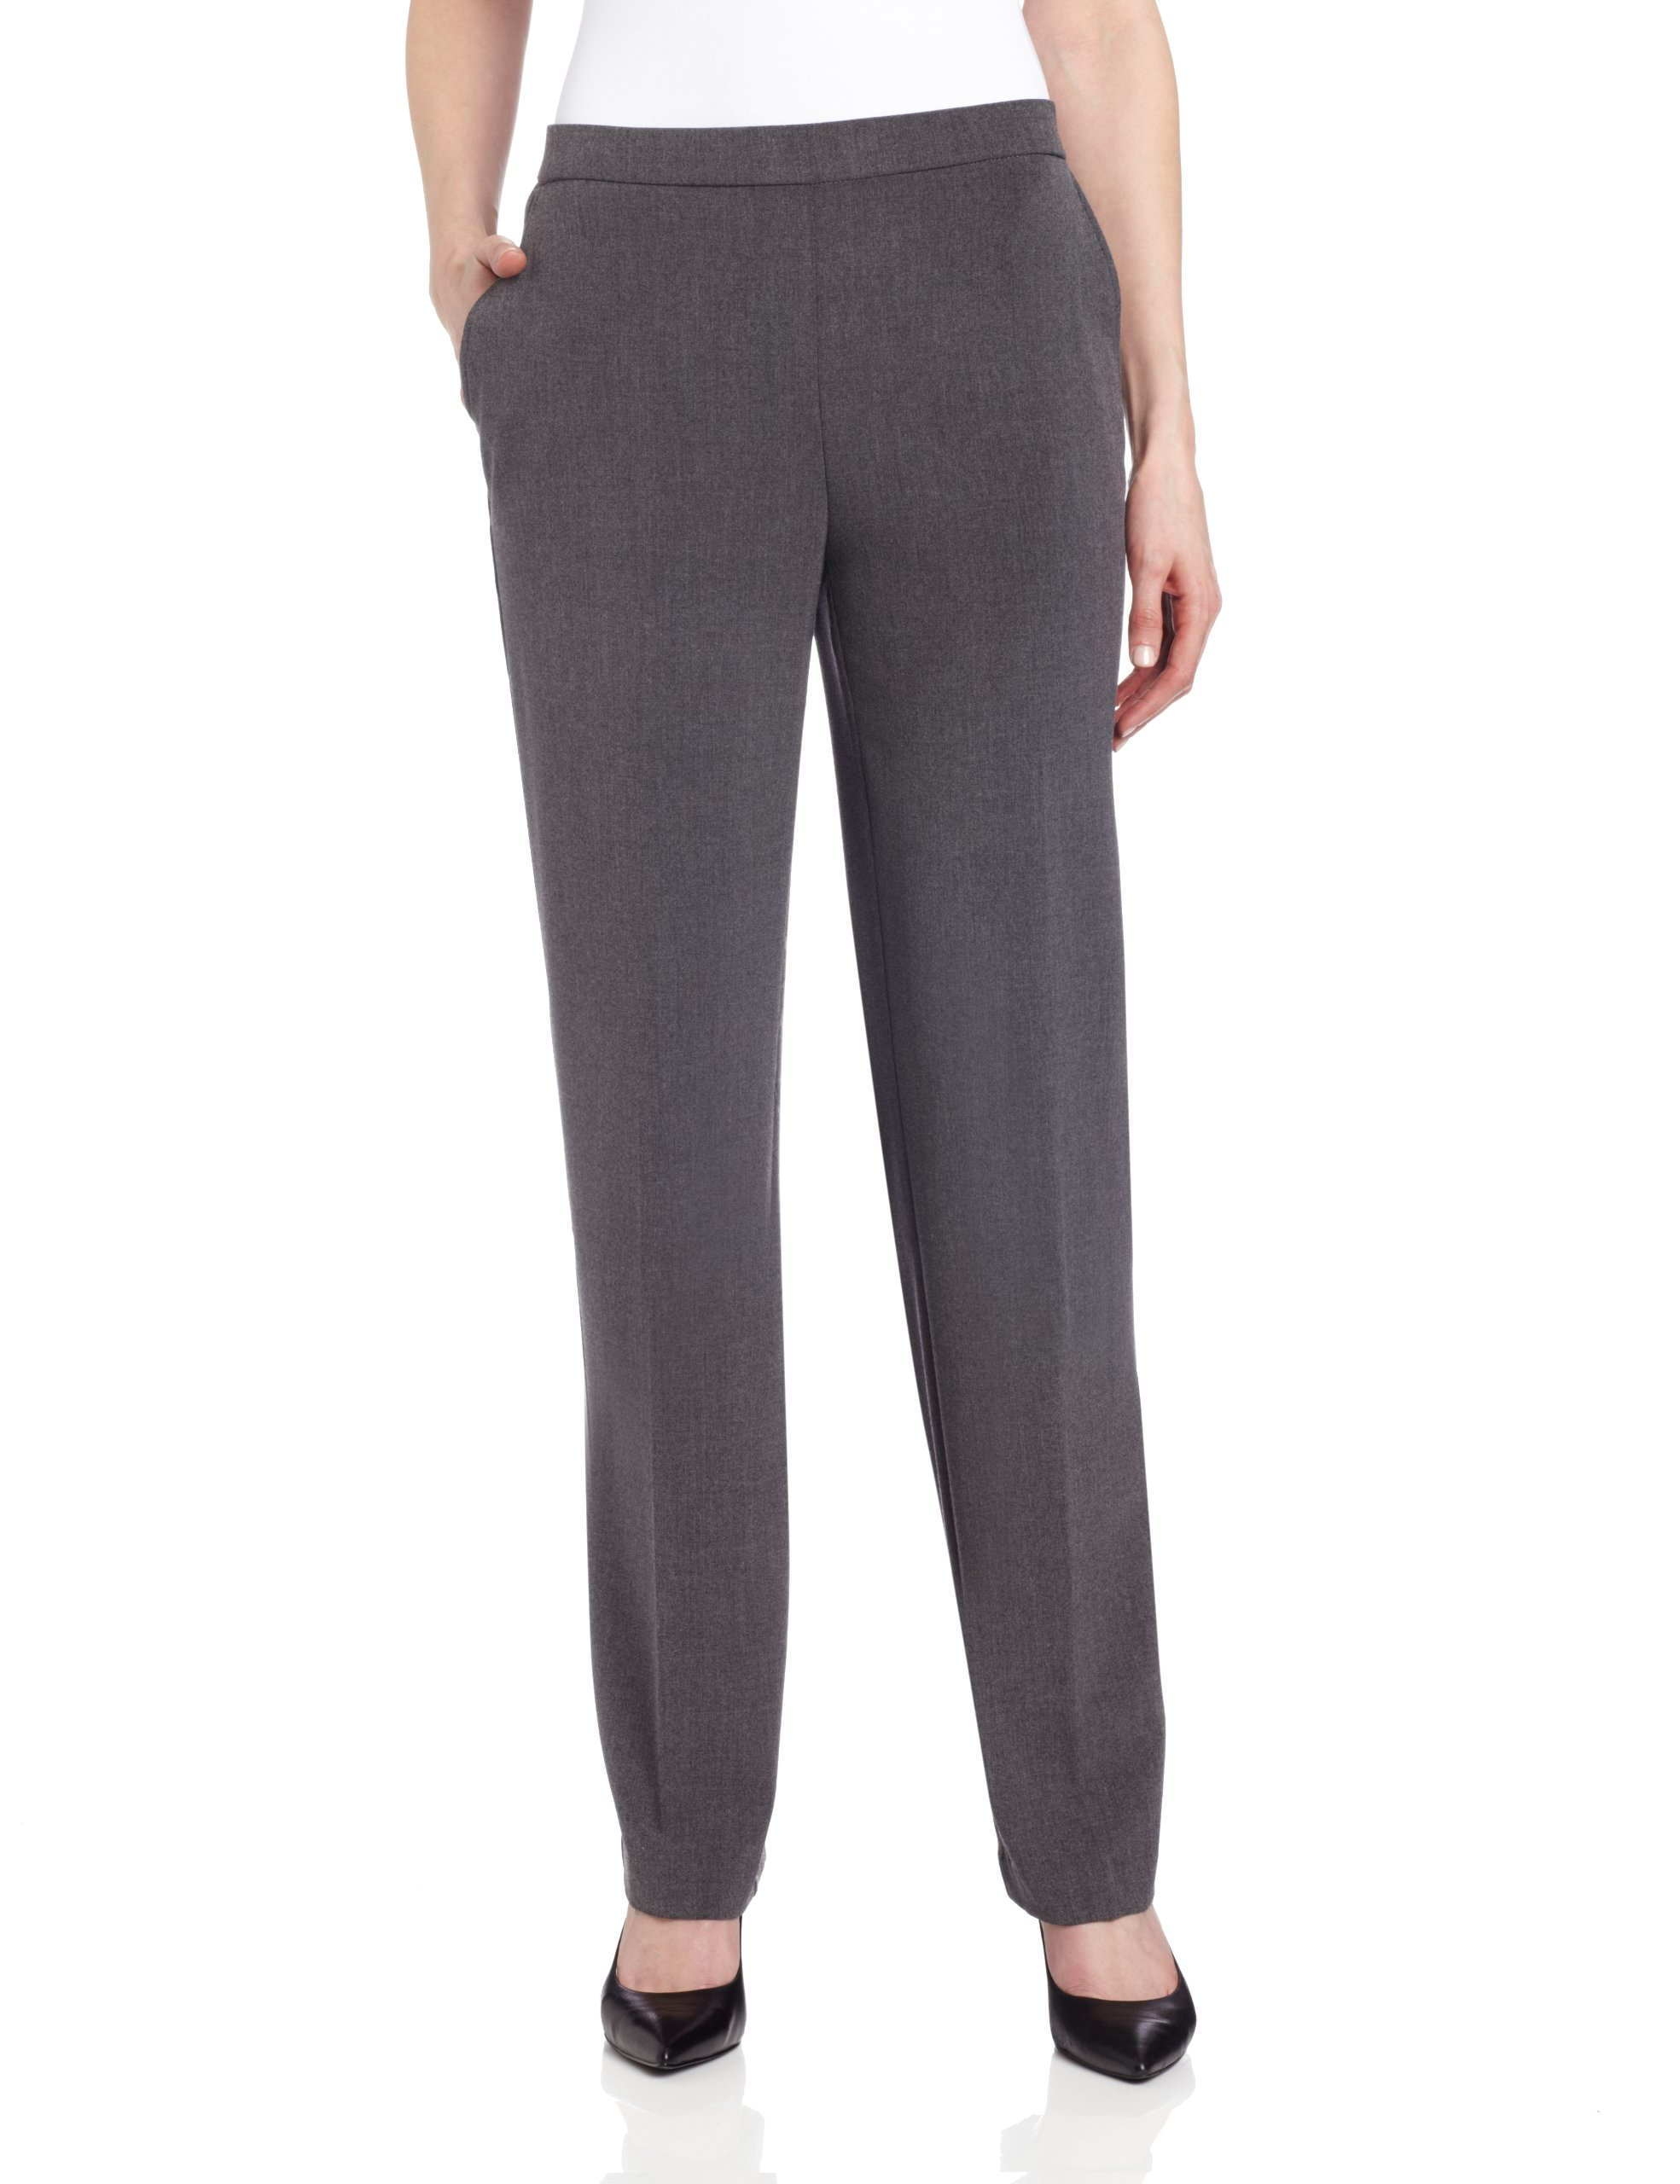 Briggs New York Women's All Around Comfort Pant,Heather Grey,8